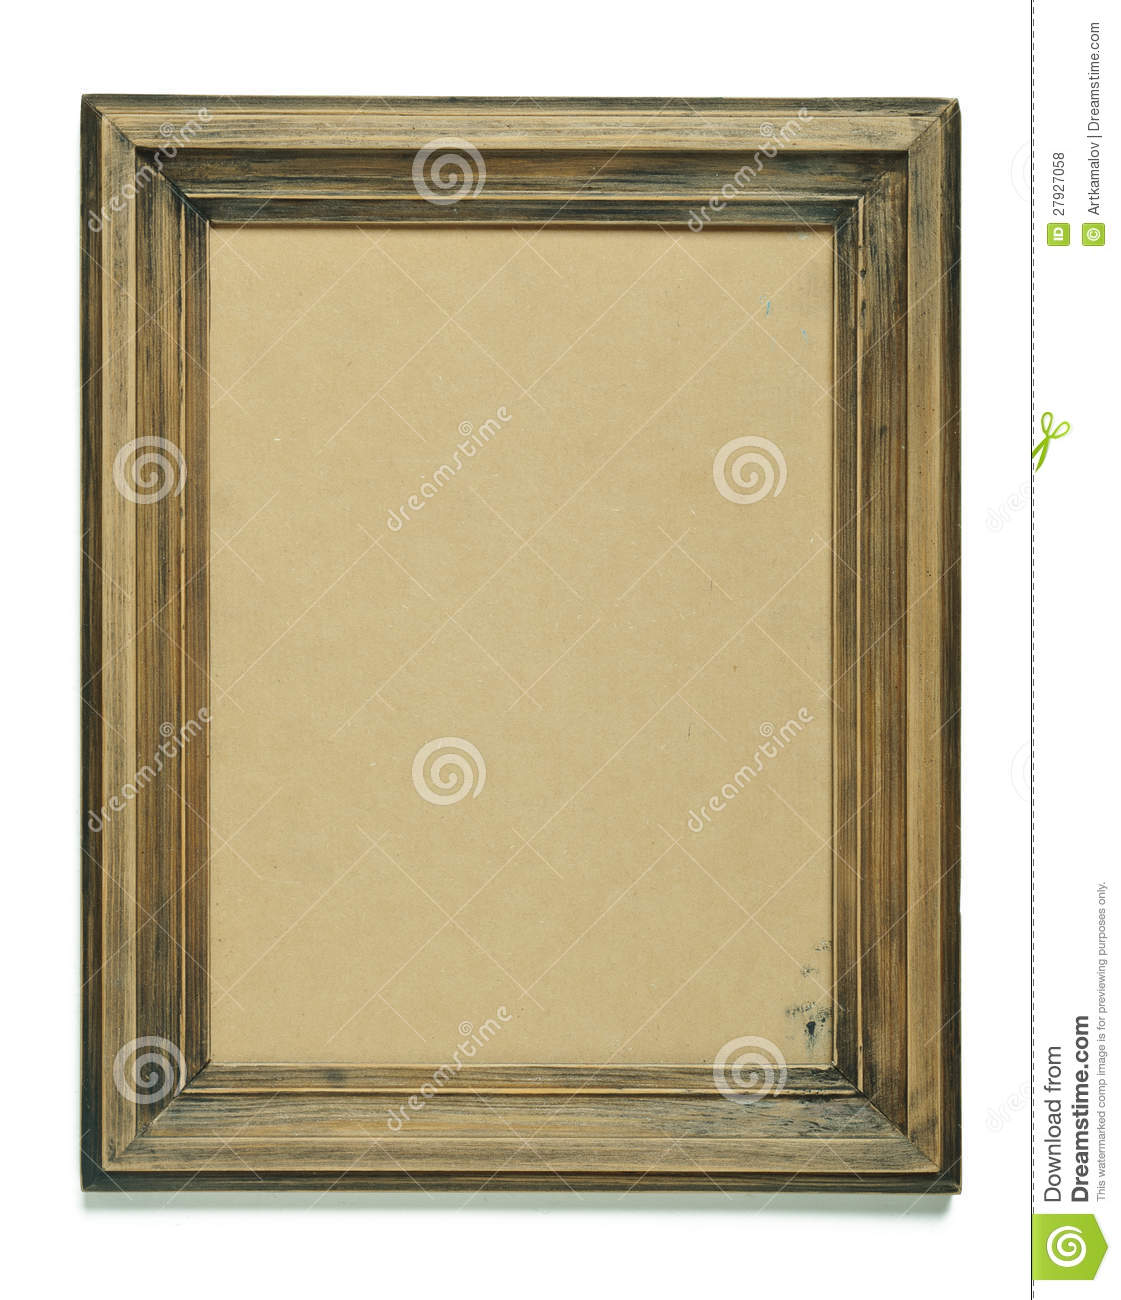 wood picture frame template - photo #18